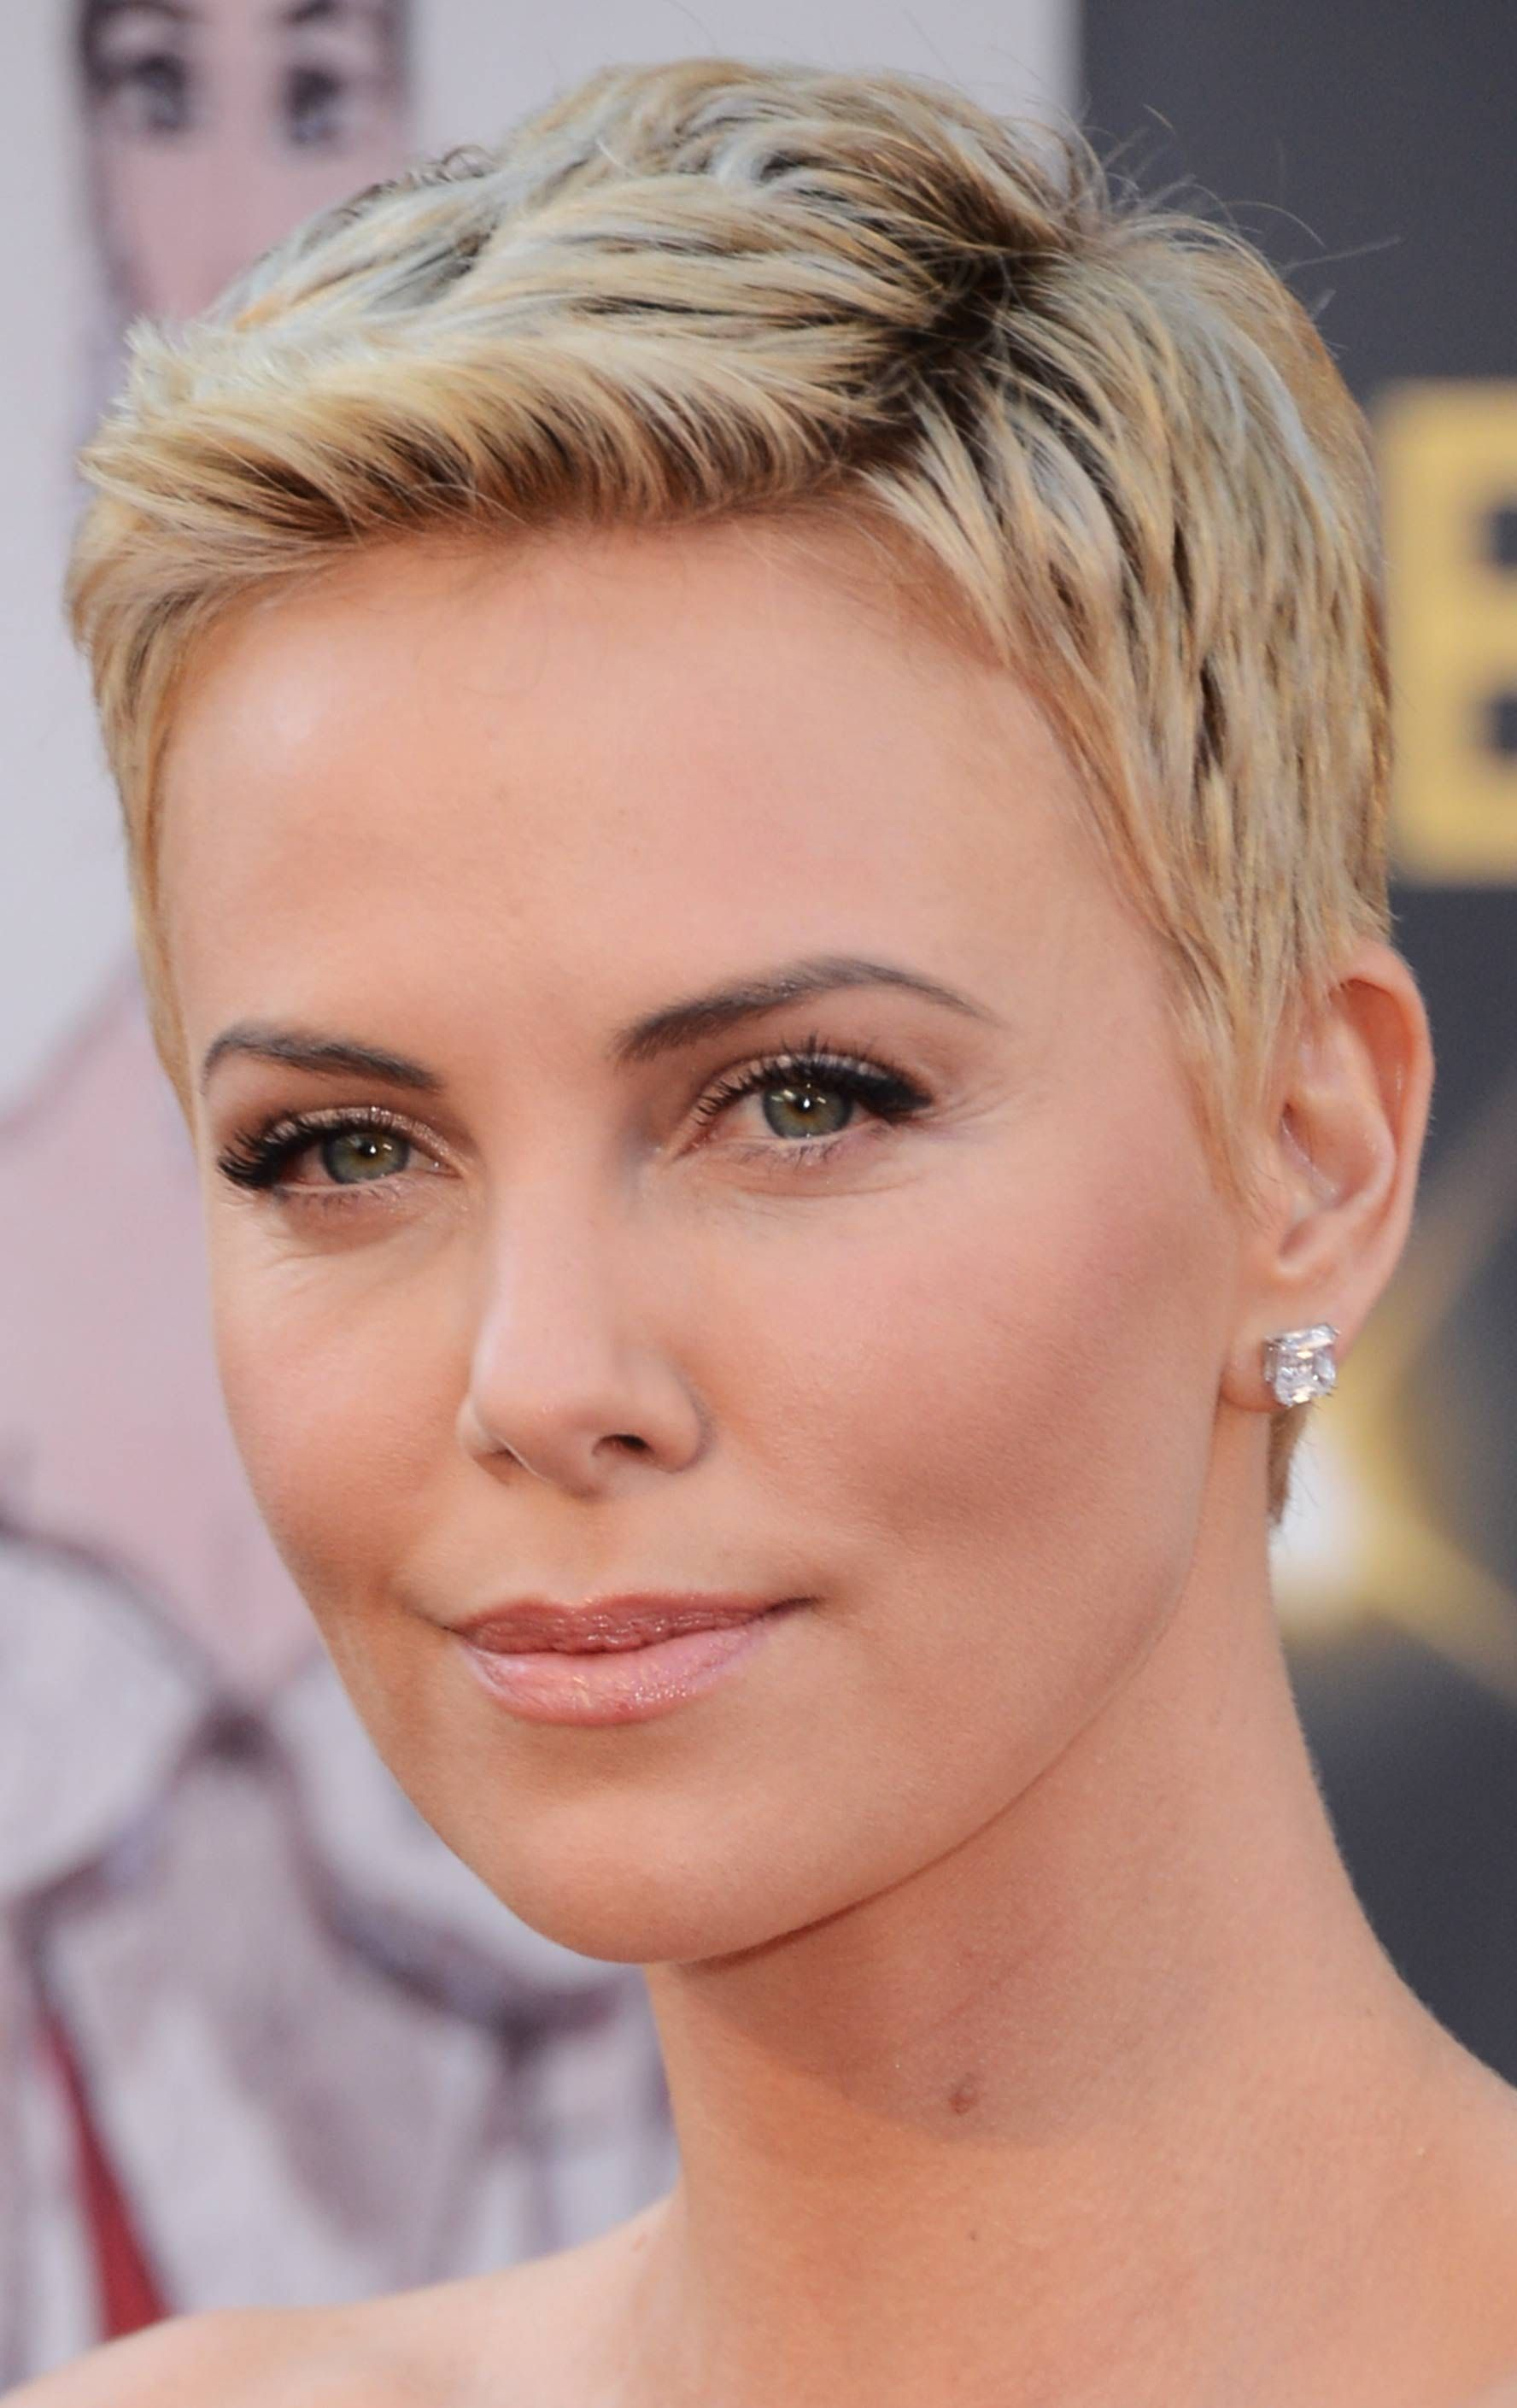 20 Flattering Hairstyles for Oval Faces | Short hairstyle, Haircut ...